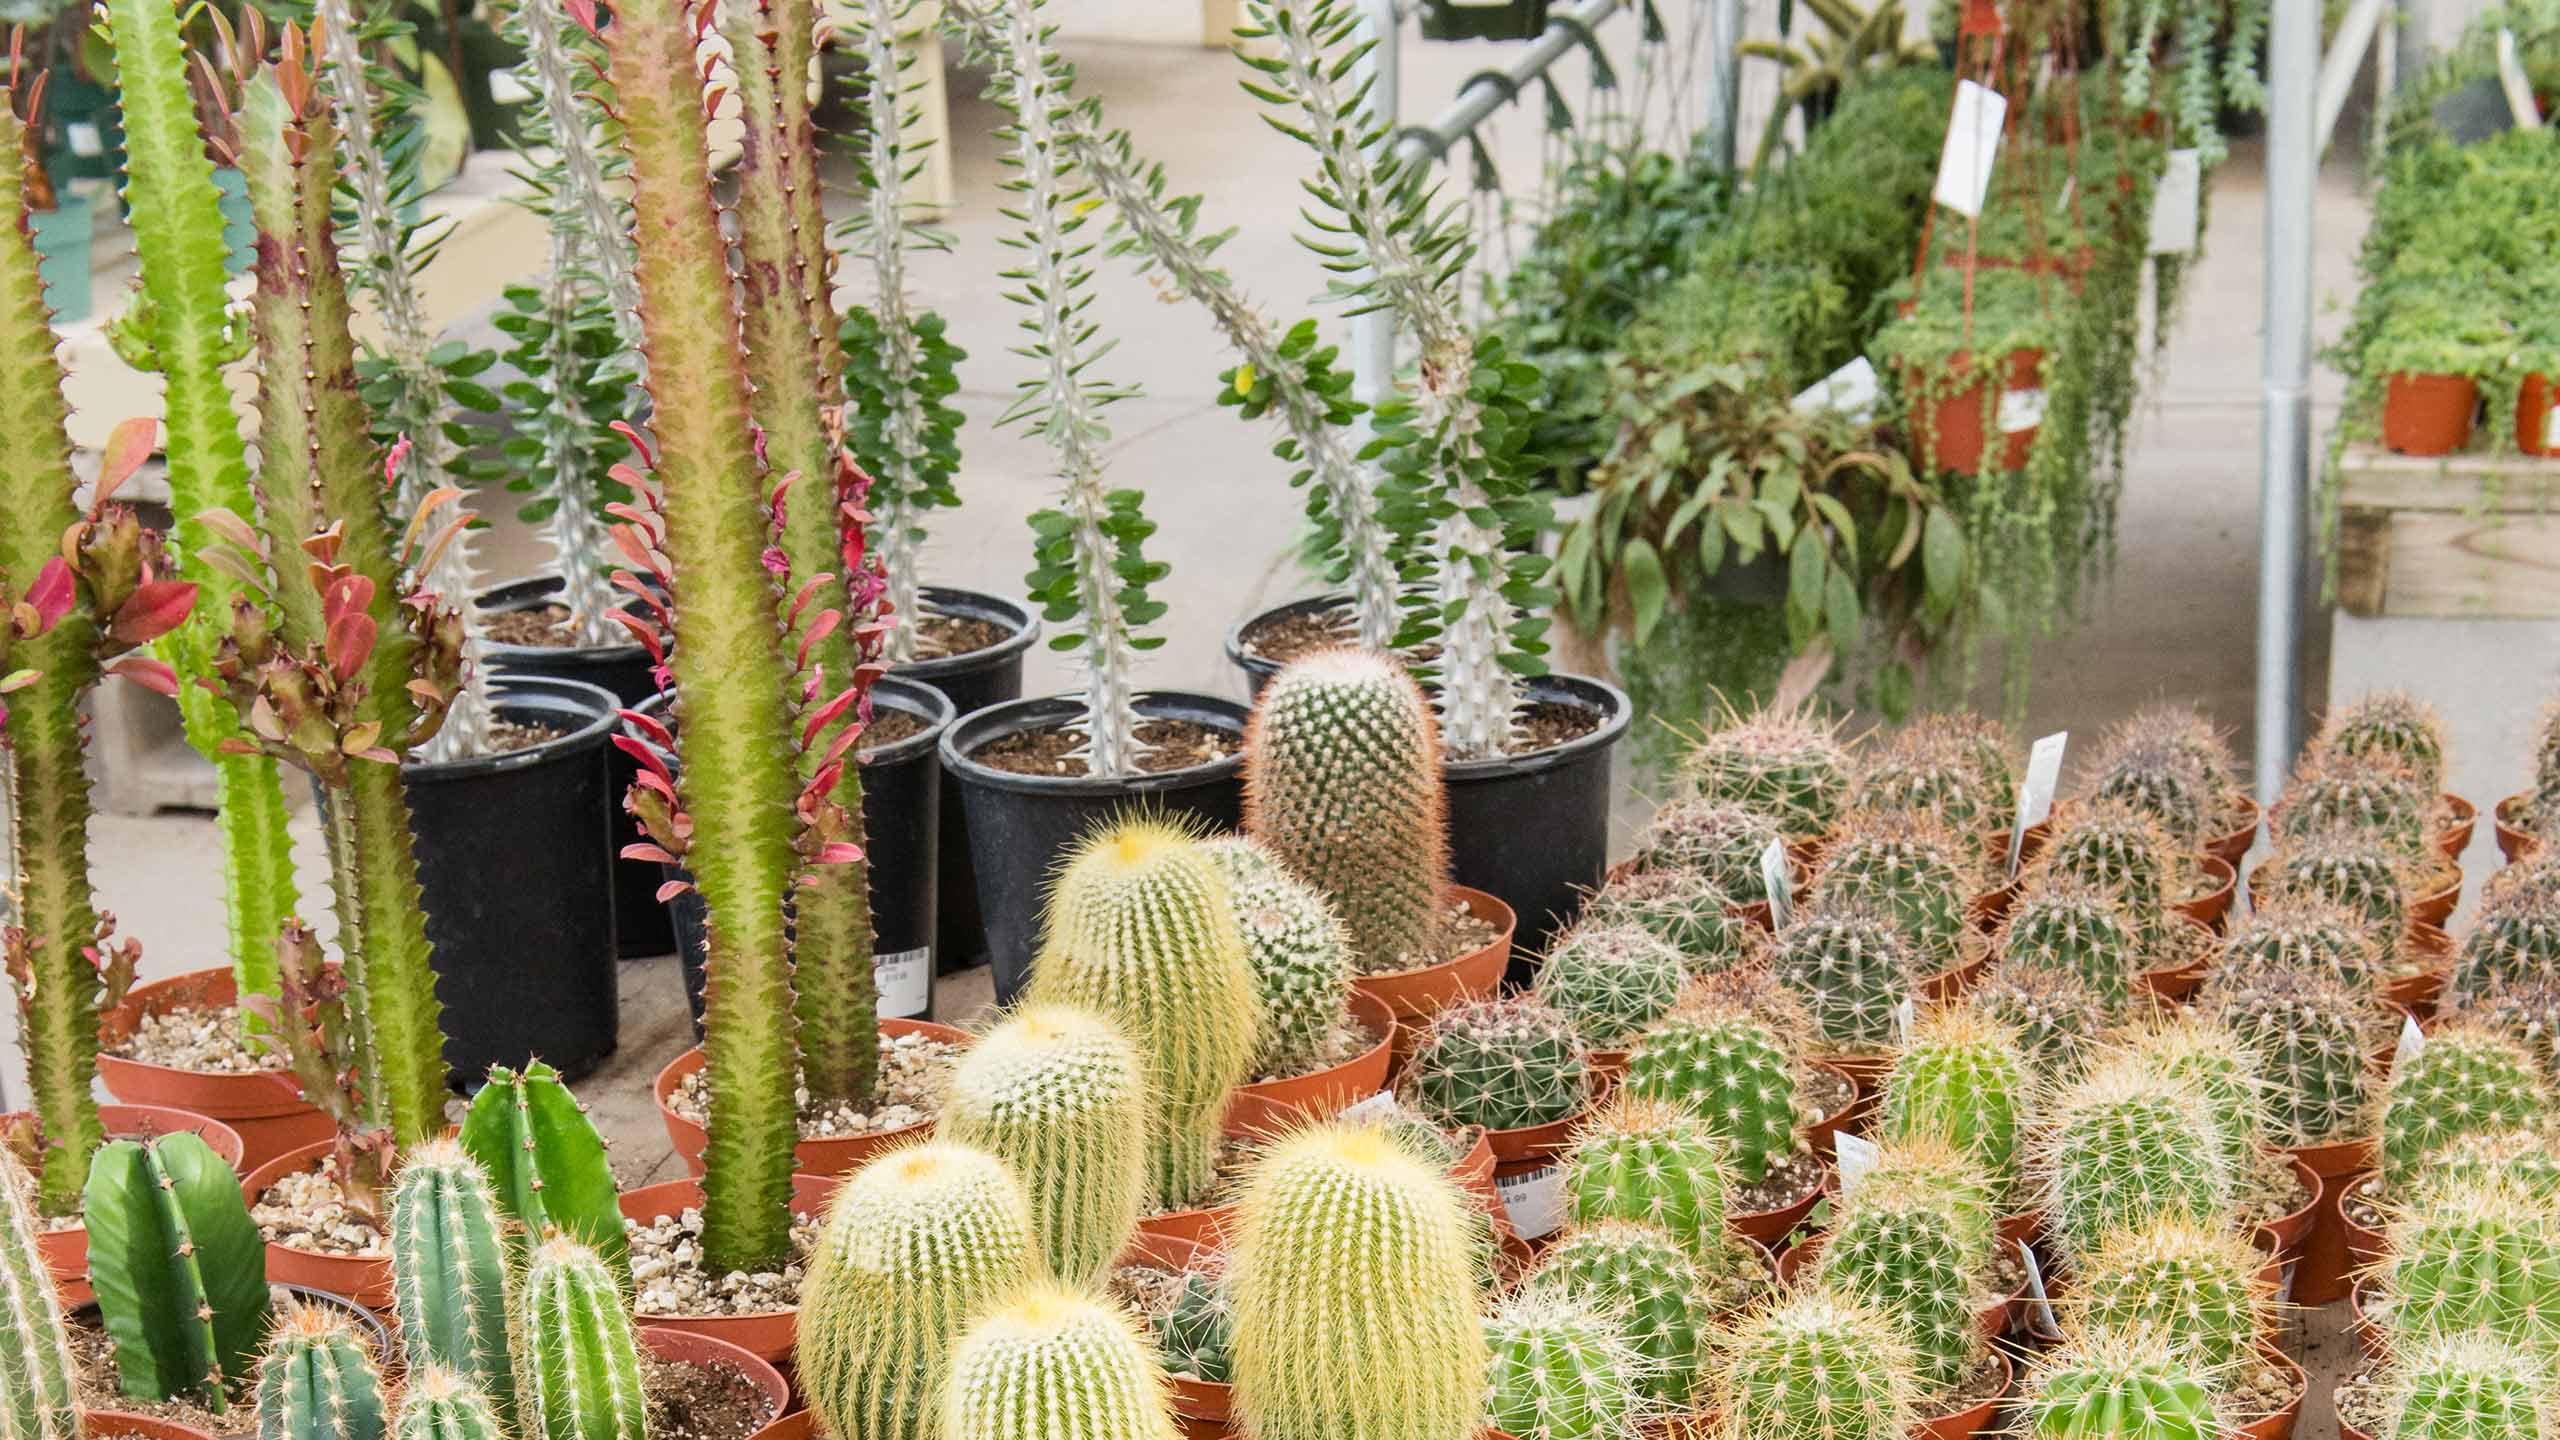 endearing house plants types. Cacti 5 Indoor Plants You Can Get and Almost Forget Mulhall s  endearing house plants types The Best 100 Endearing House Types Image Collections www